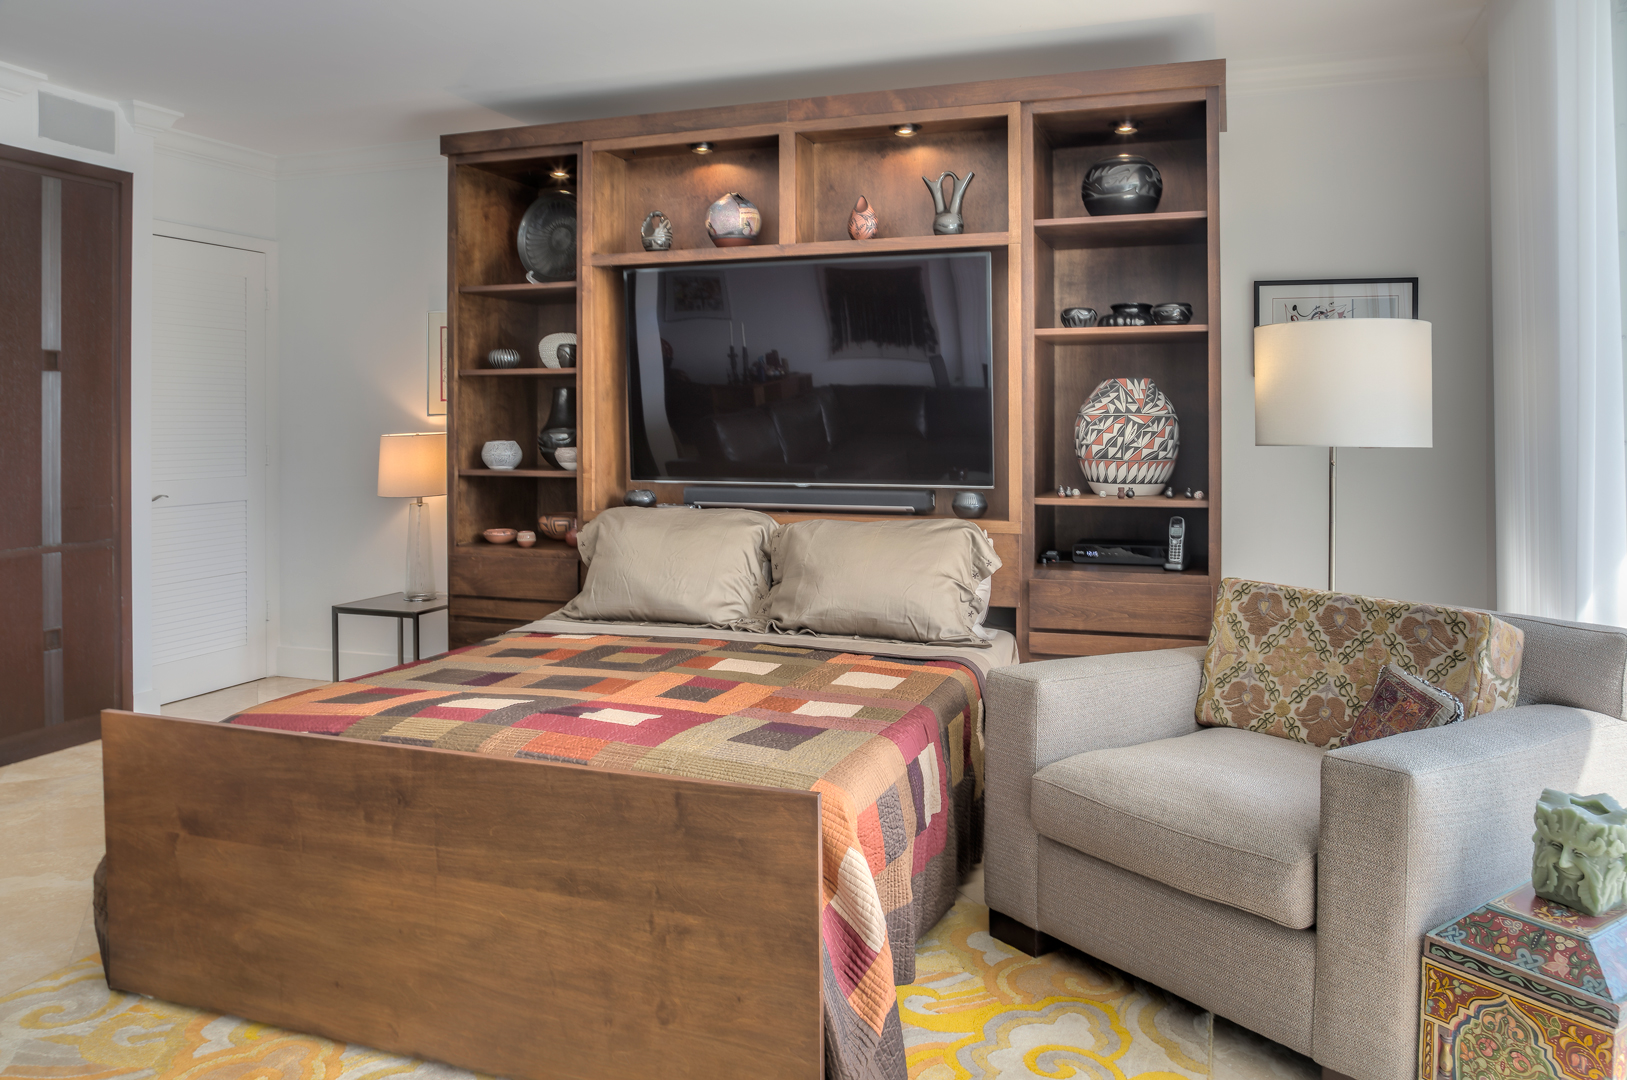 Custom wall bed 1 wall unit for bedroom custom wall bed custom power wall bed image collections home wall decoration ideas power wall bed images home wall decoration ideas power wallbed images page 1 american modern amipublicfo Gallery